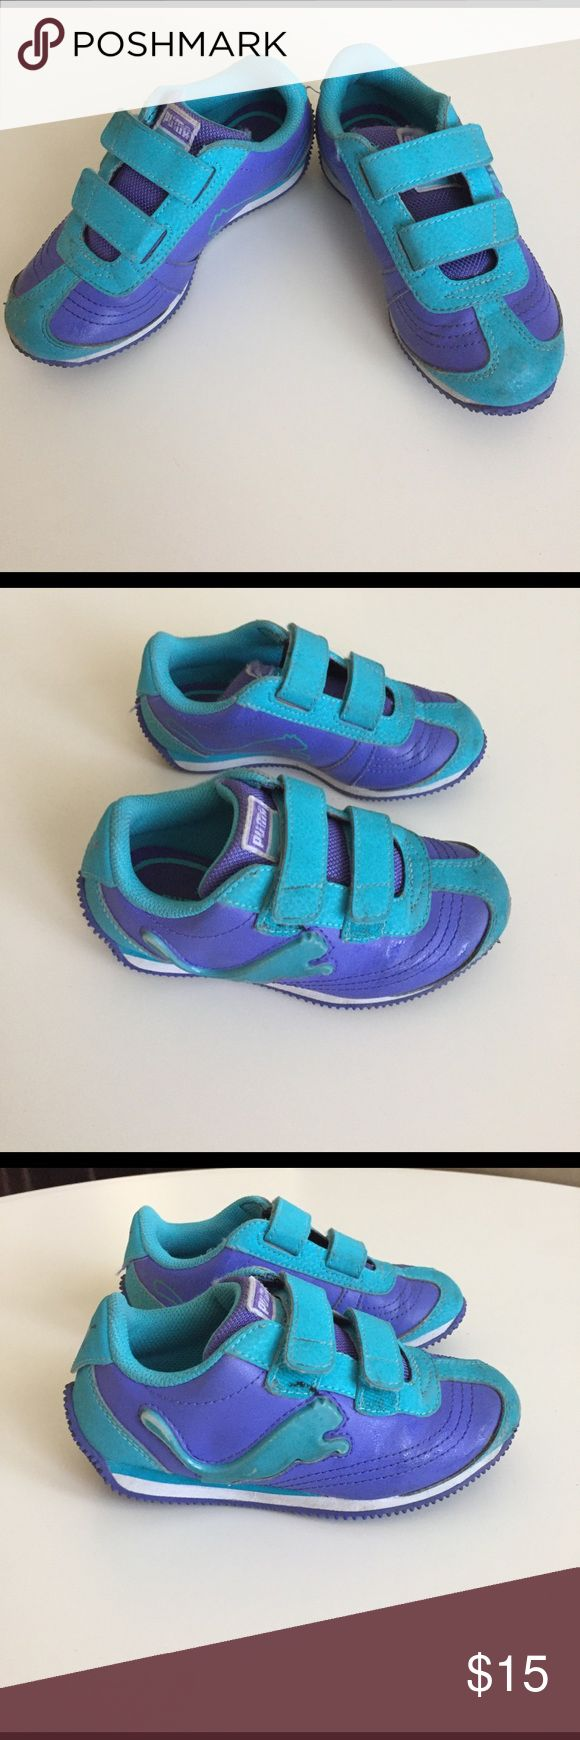 Girls Puma velcro rubber shoes sz US 11 Used few times.  In great condition except for a little scrape on the tip of right shoe. Puma Shoes Sneakers